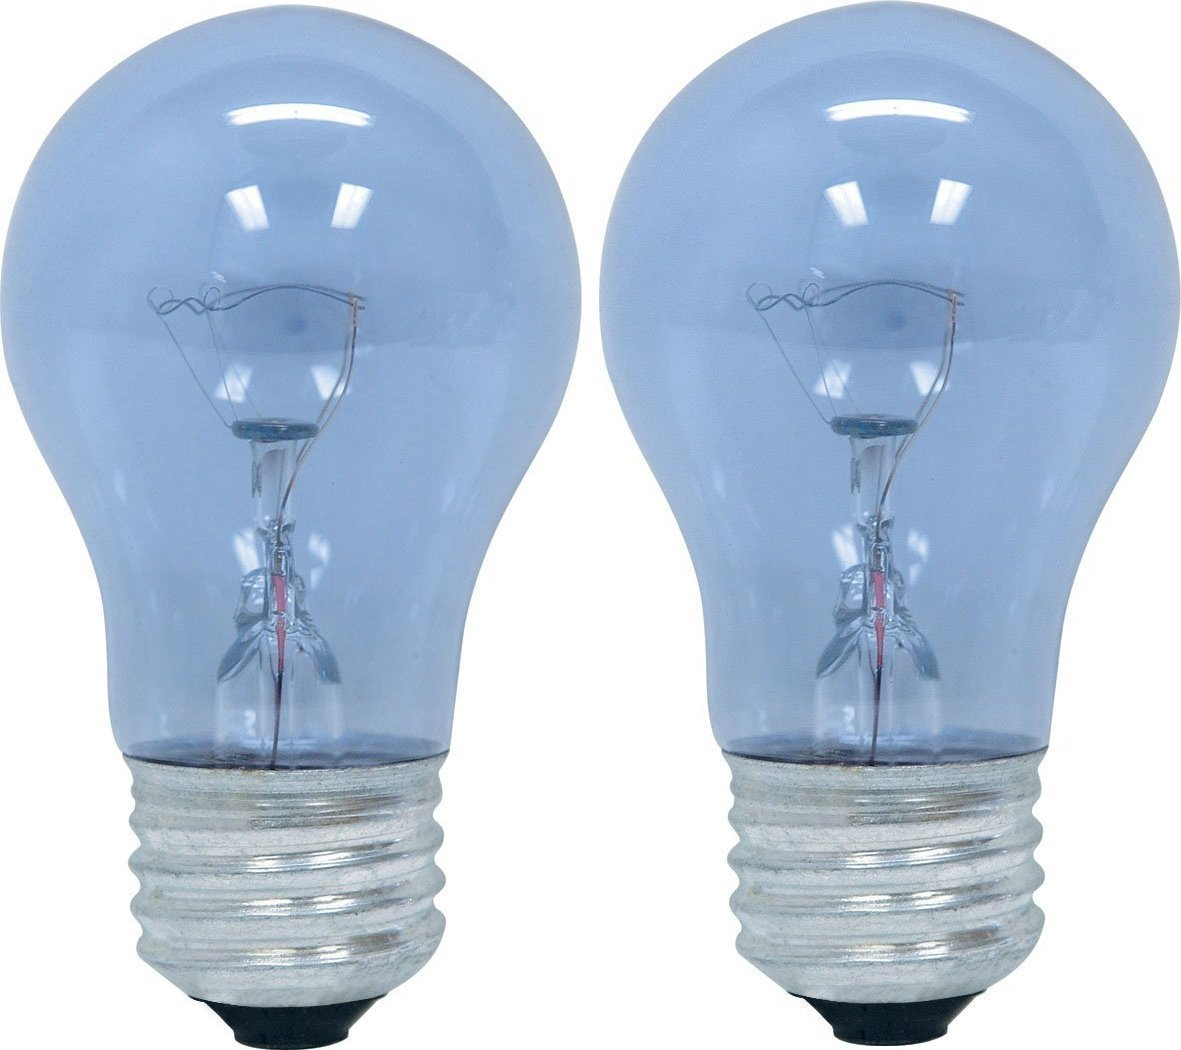 GE Lighting 48706 40-Watt Reveal A15 Appliance Bulb, 6 Pack